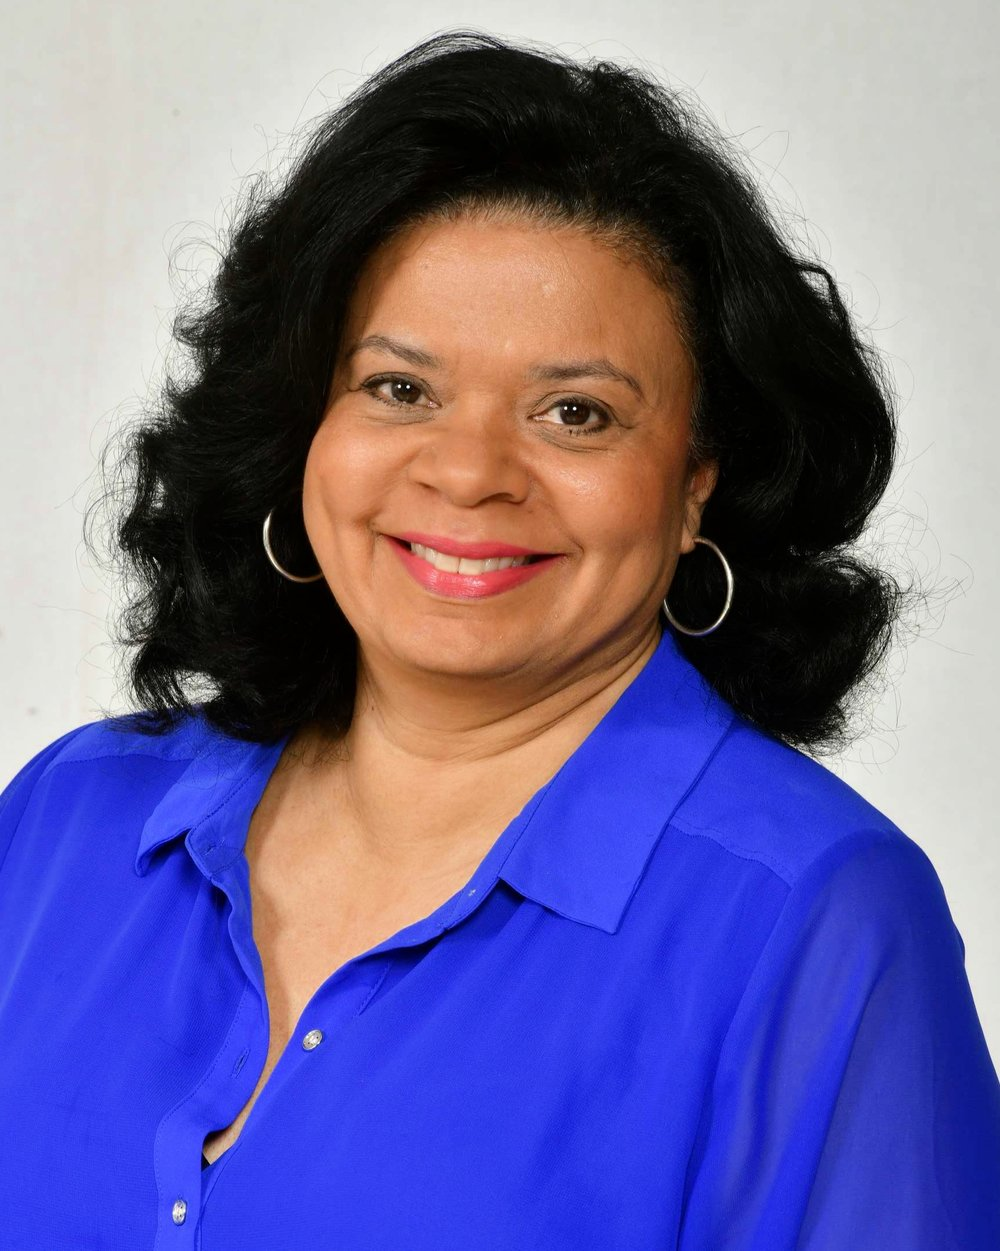 Panelist Yvette Heyliger, playwright, producing artist & activist